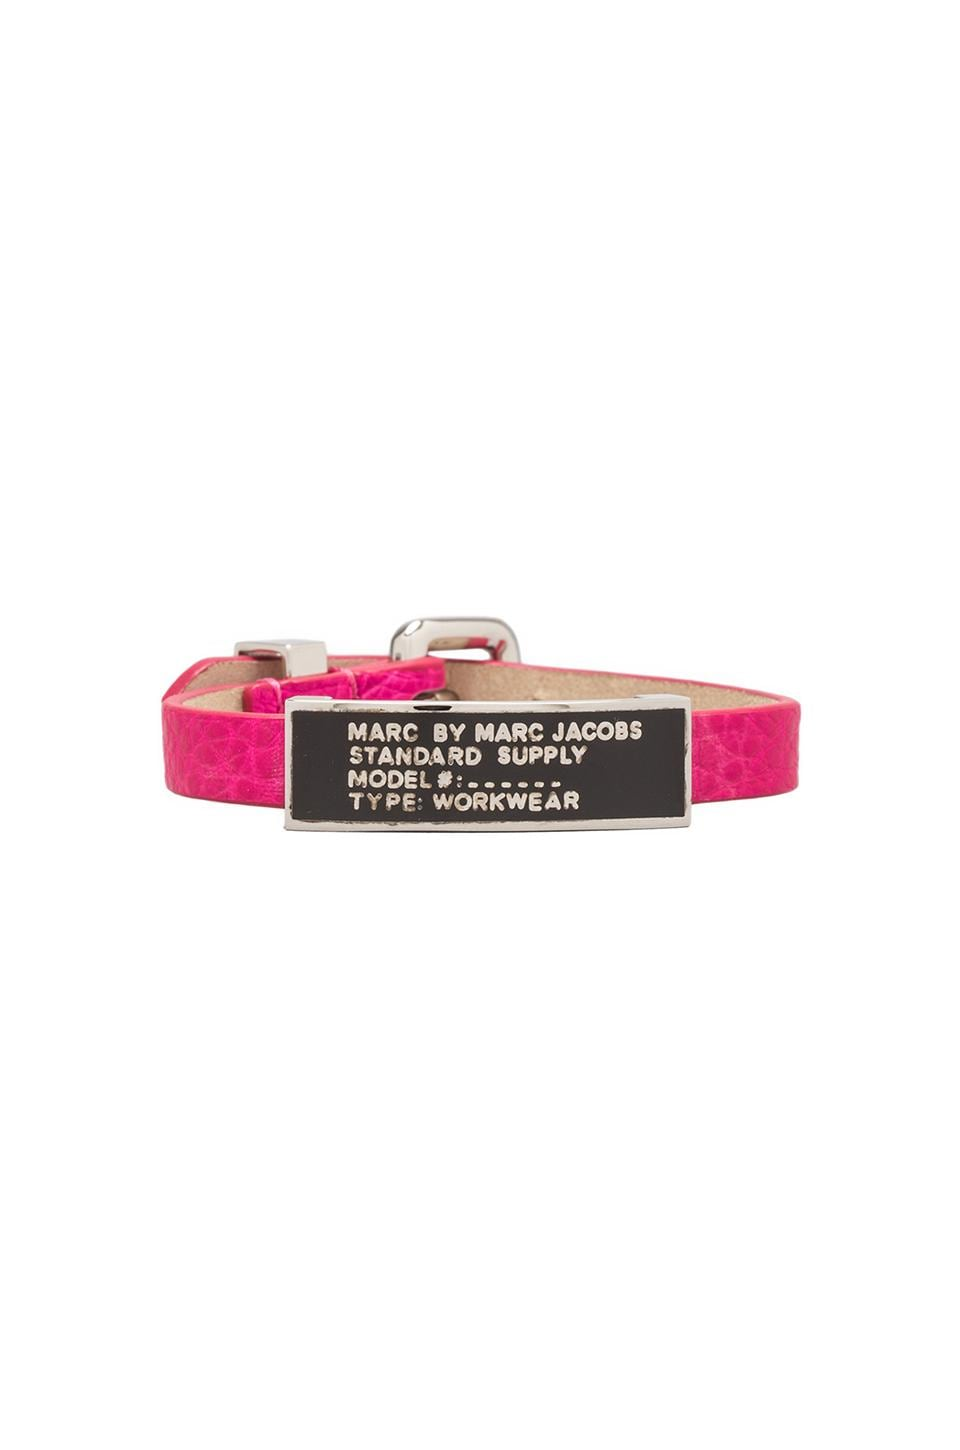 Marc by Marc Jacobs Enamel Standard Supply ID Bracelet in Pop Pink/Black (Argento)